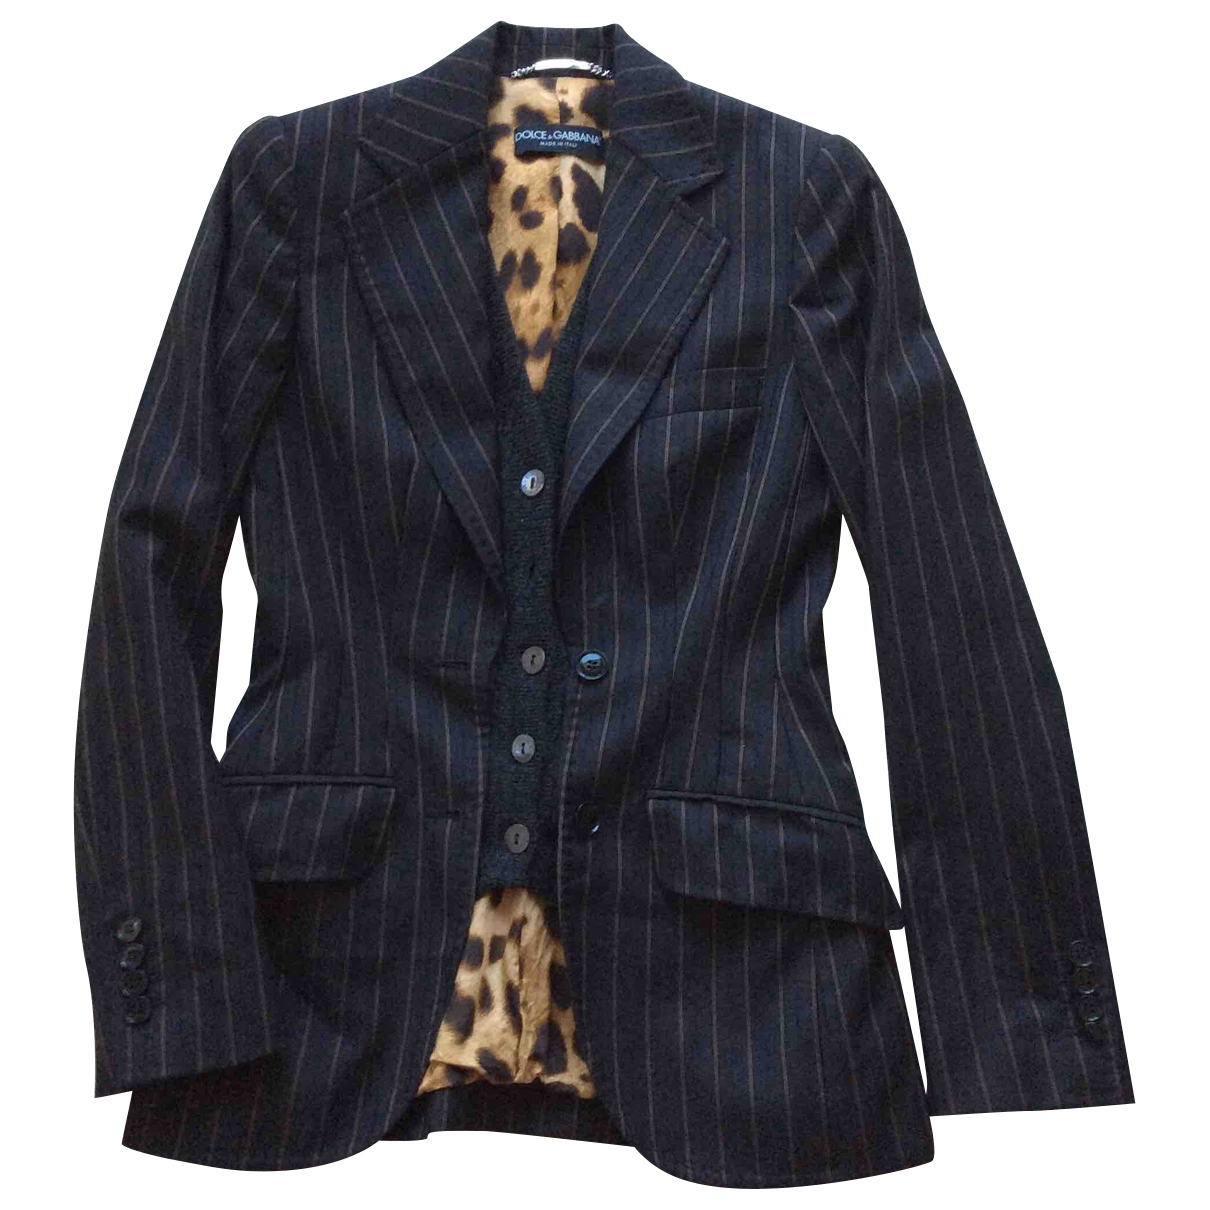 Dolce & Gabbana \N Anthracite Wool jacket for Women 40 IT